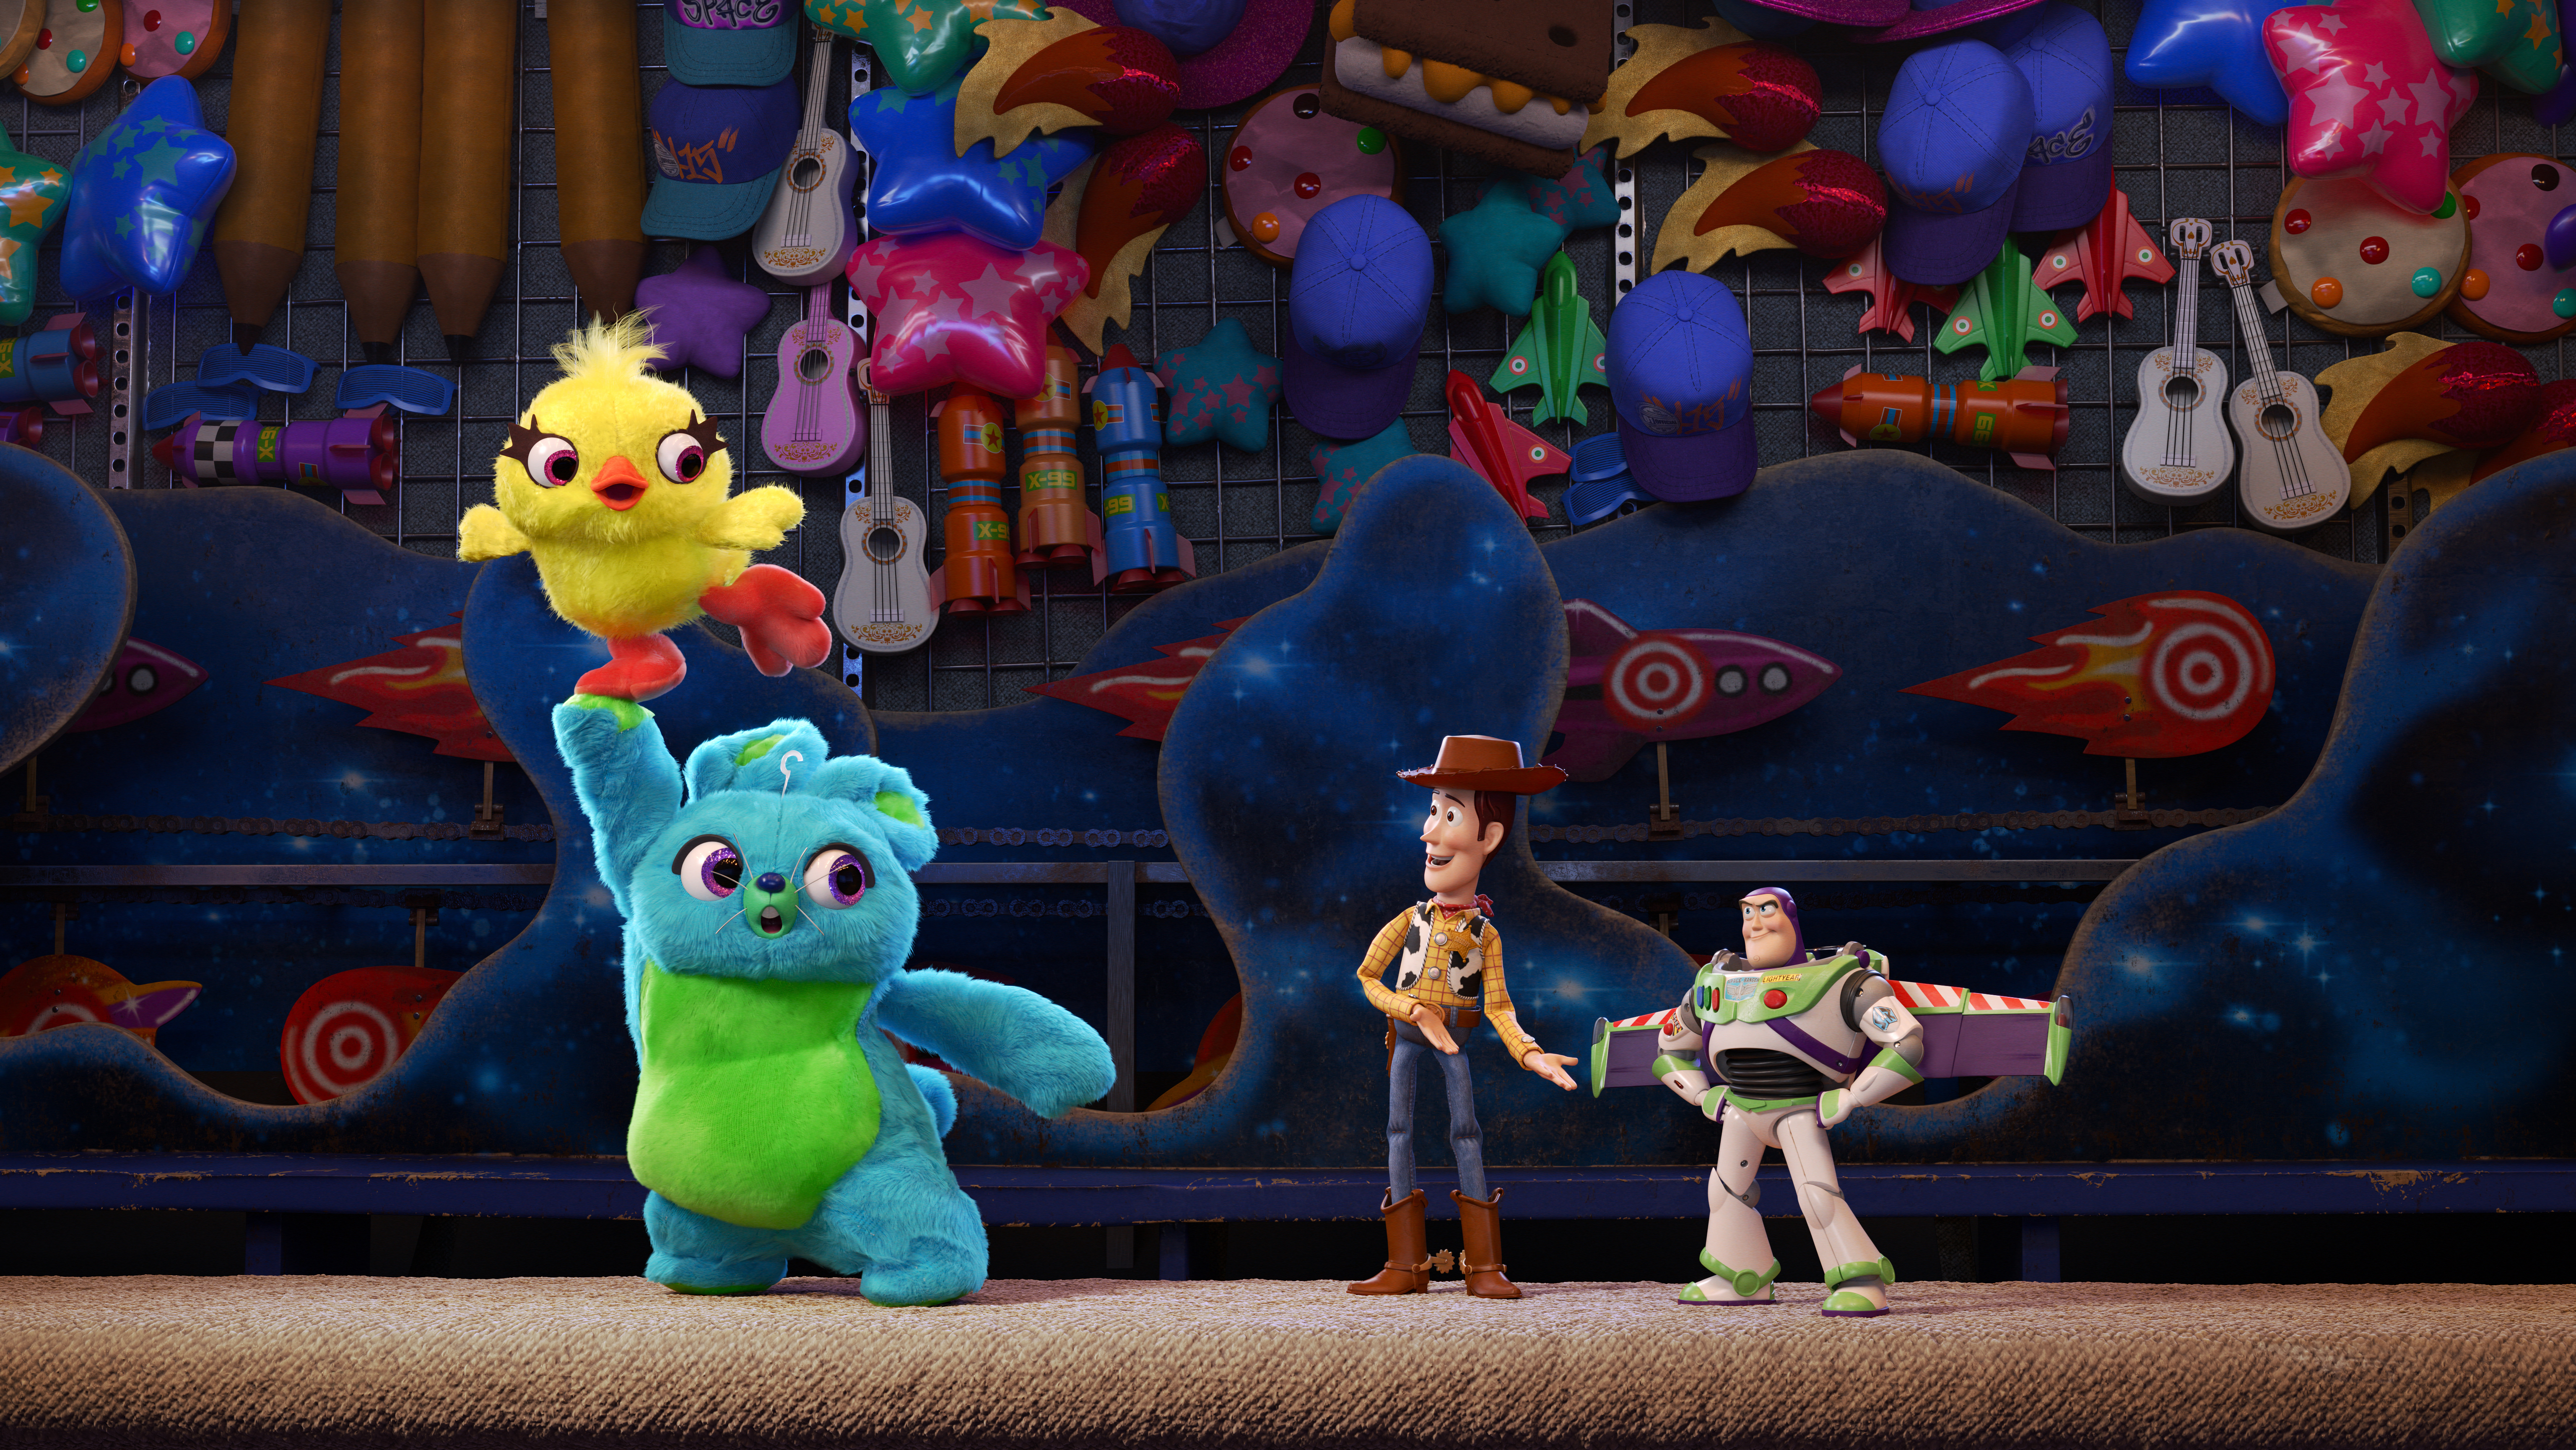 Toy Story 4 2019 5k Hd Movies 4k Wallpapers Images Backgrounds Photos And Pictures